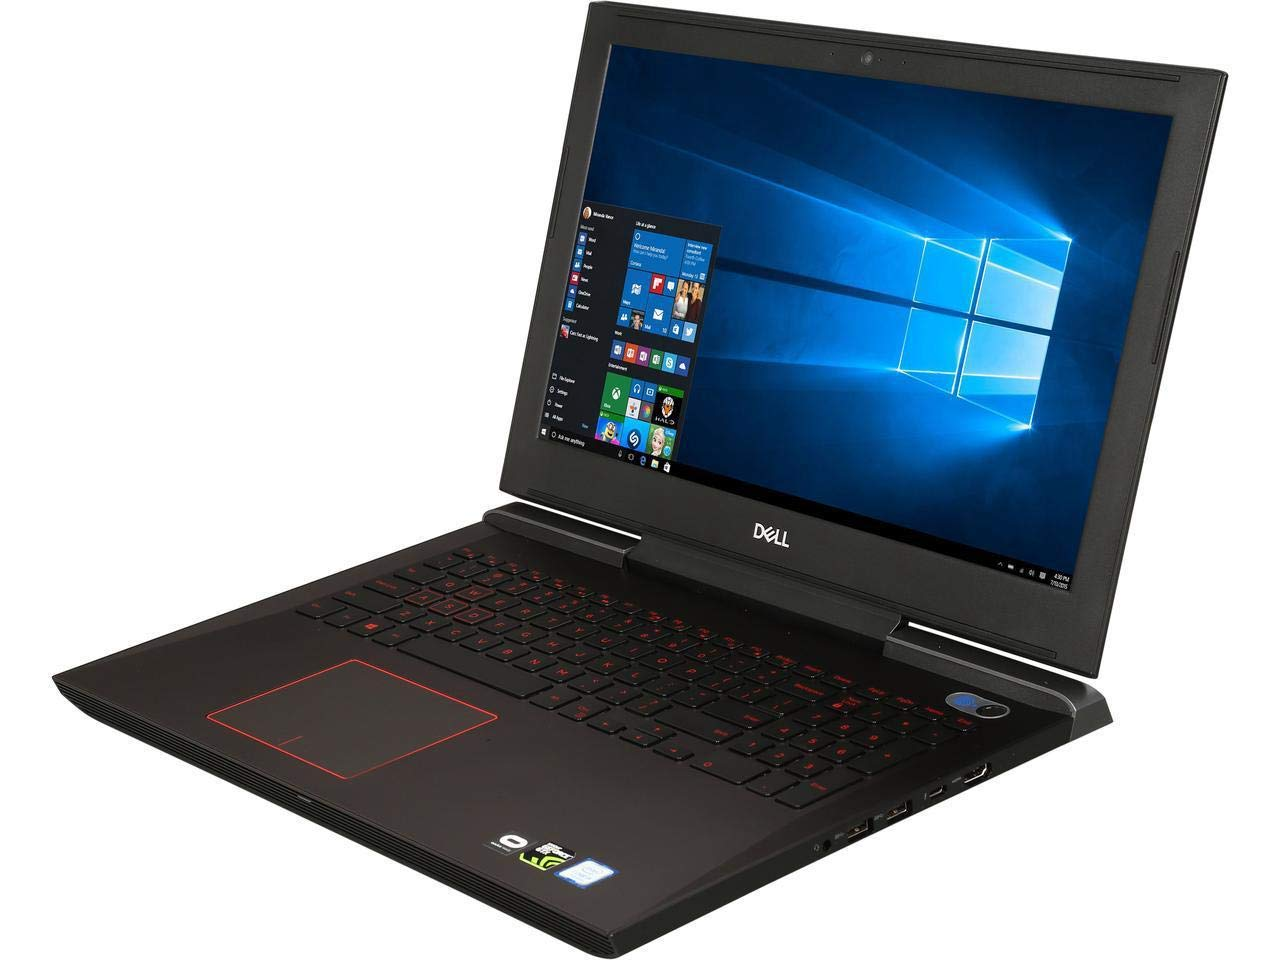 "DELL Inspiron 15.6"" FHD IPS VR Ready High Performance Gaming Laptop, Intel Quad Core i5-7300HQ Up to 3.5GHz, 16GB Memory, 256GB SSD, 1TB HDD, NVIDIA GeForce GTX 1060, Backlit Keyboard, Windows 10"